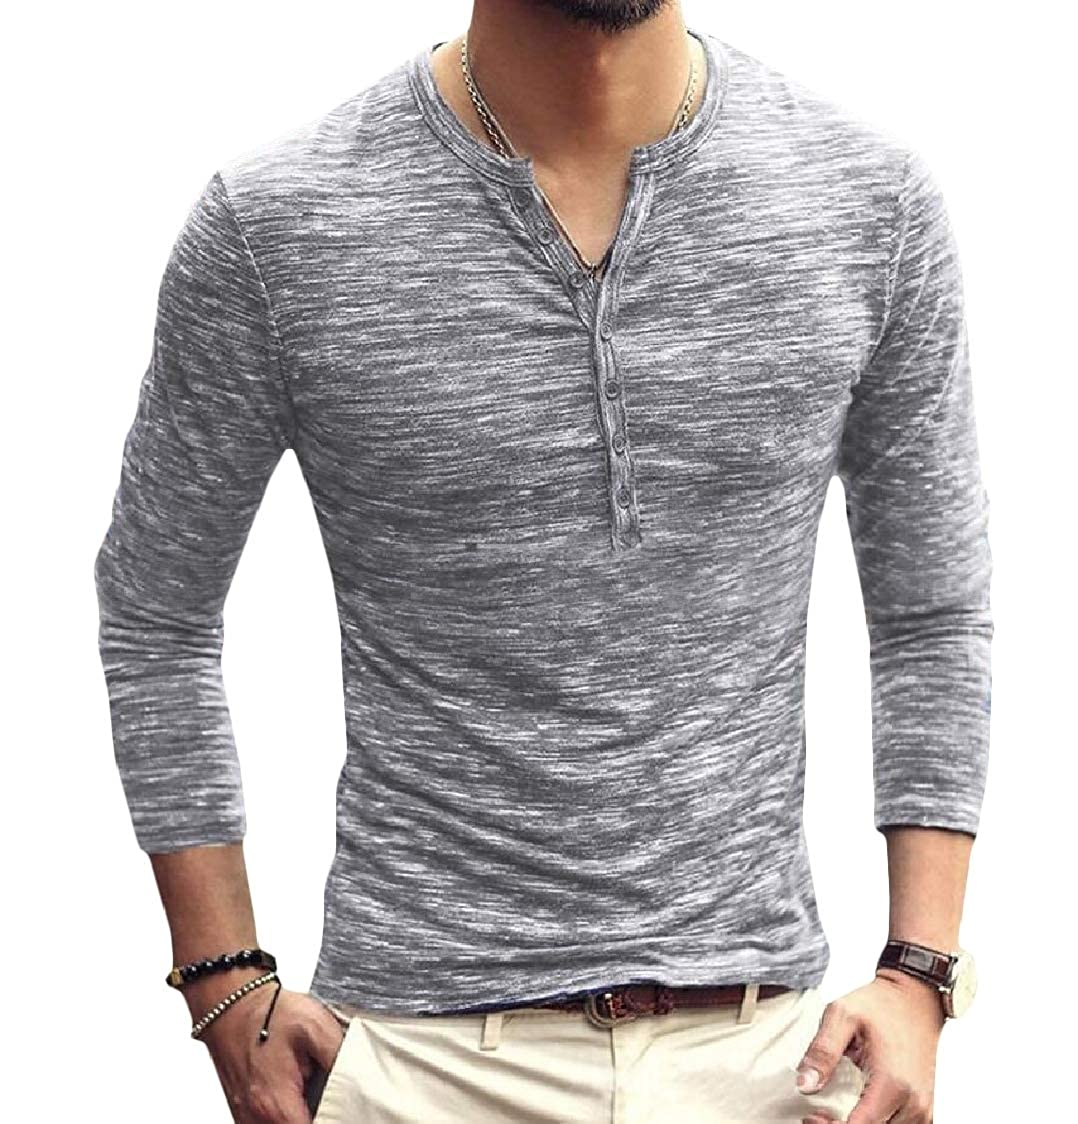 Lutratocro Mens Button Pullover Slim Fit Crewneck Long Sleeve T-Shirt Top